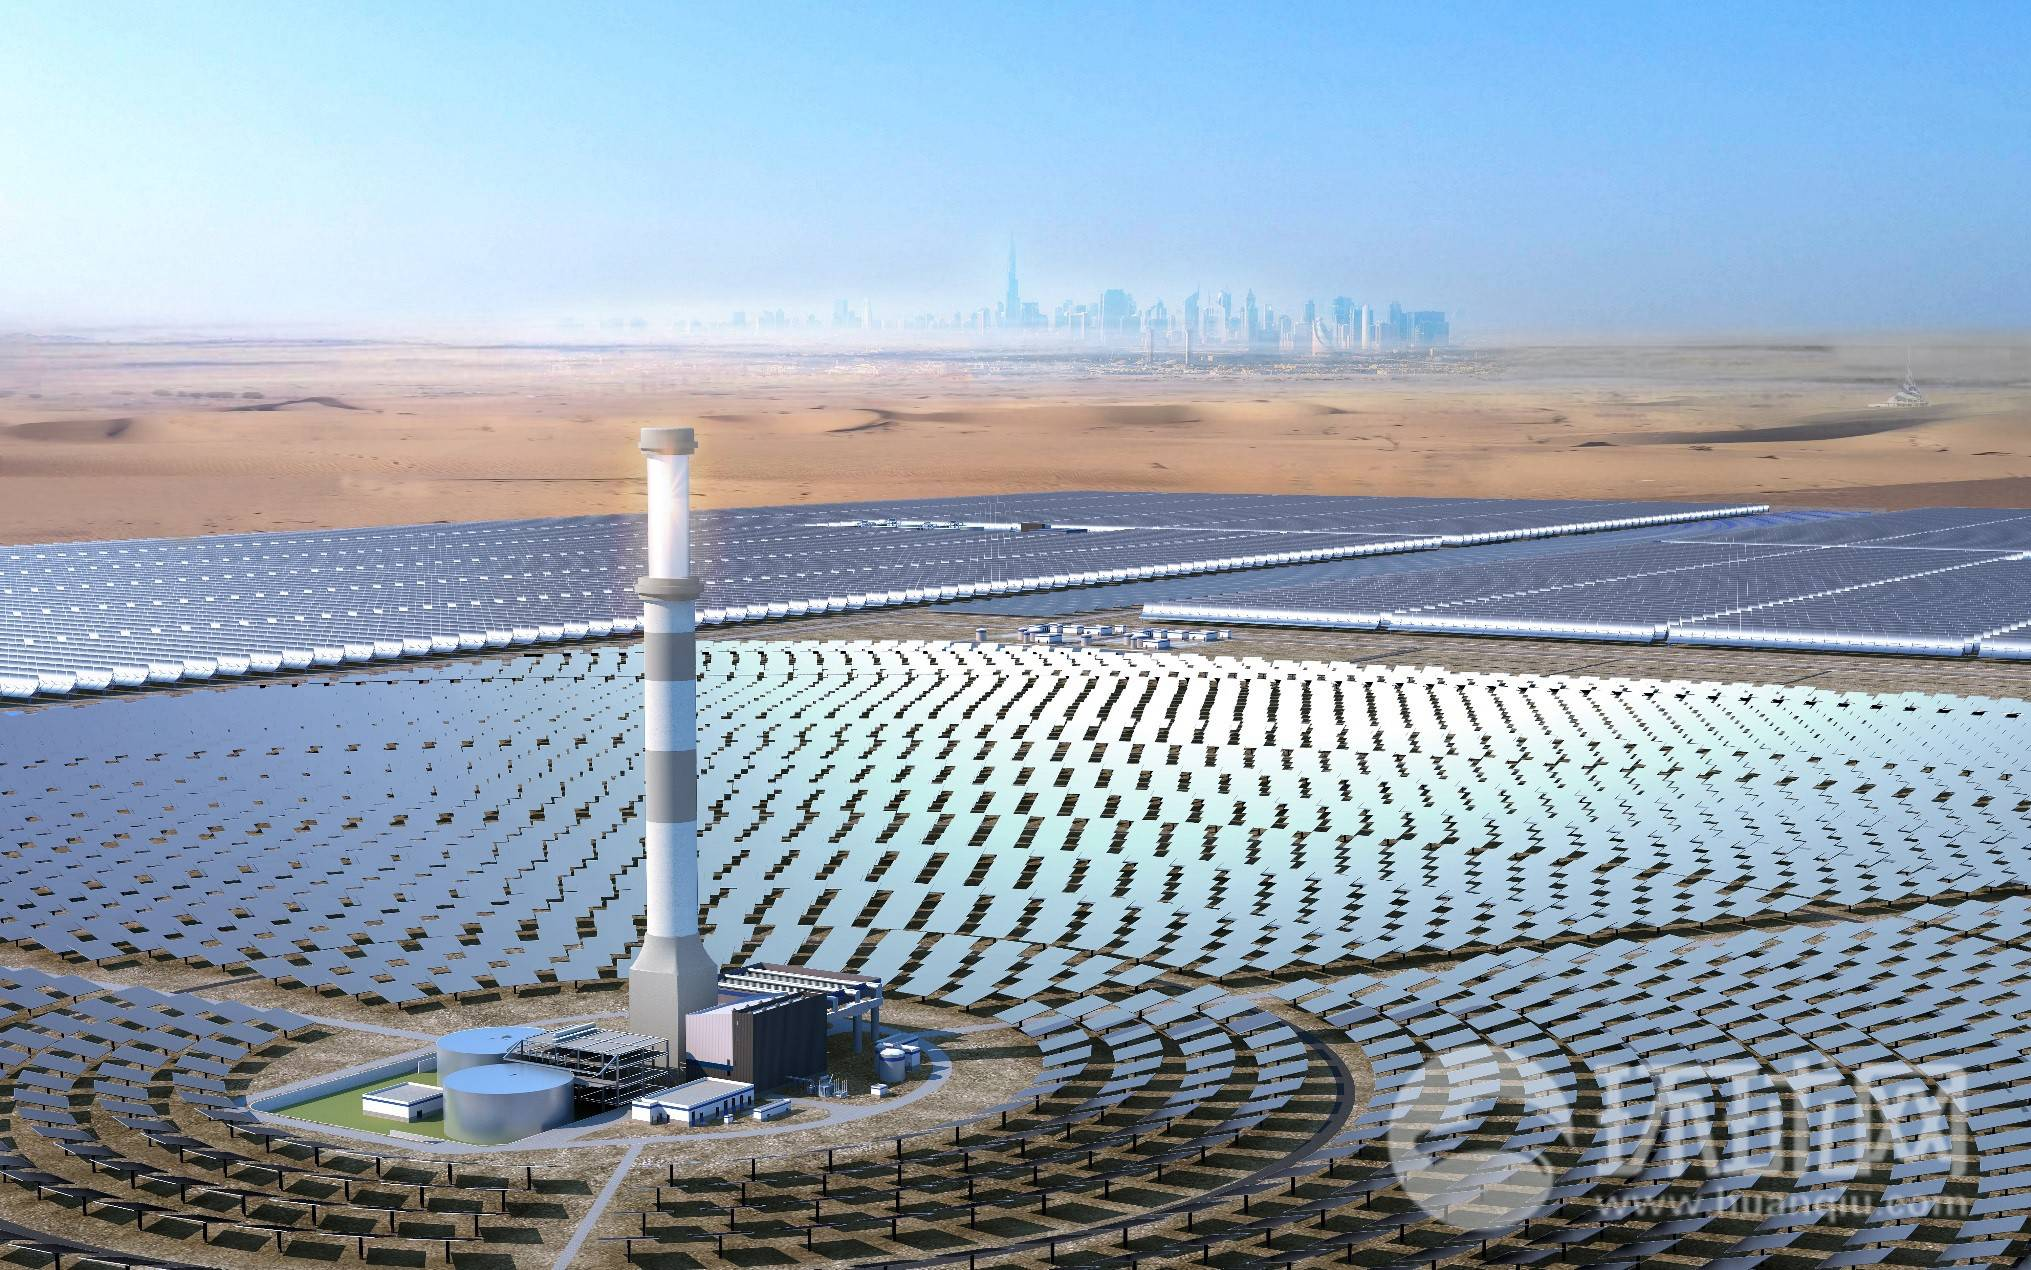 A glimpse of world's largest concentrated solar power project in UAE